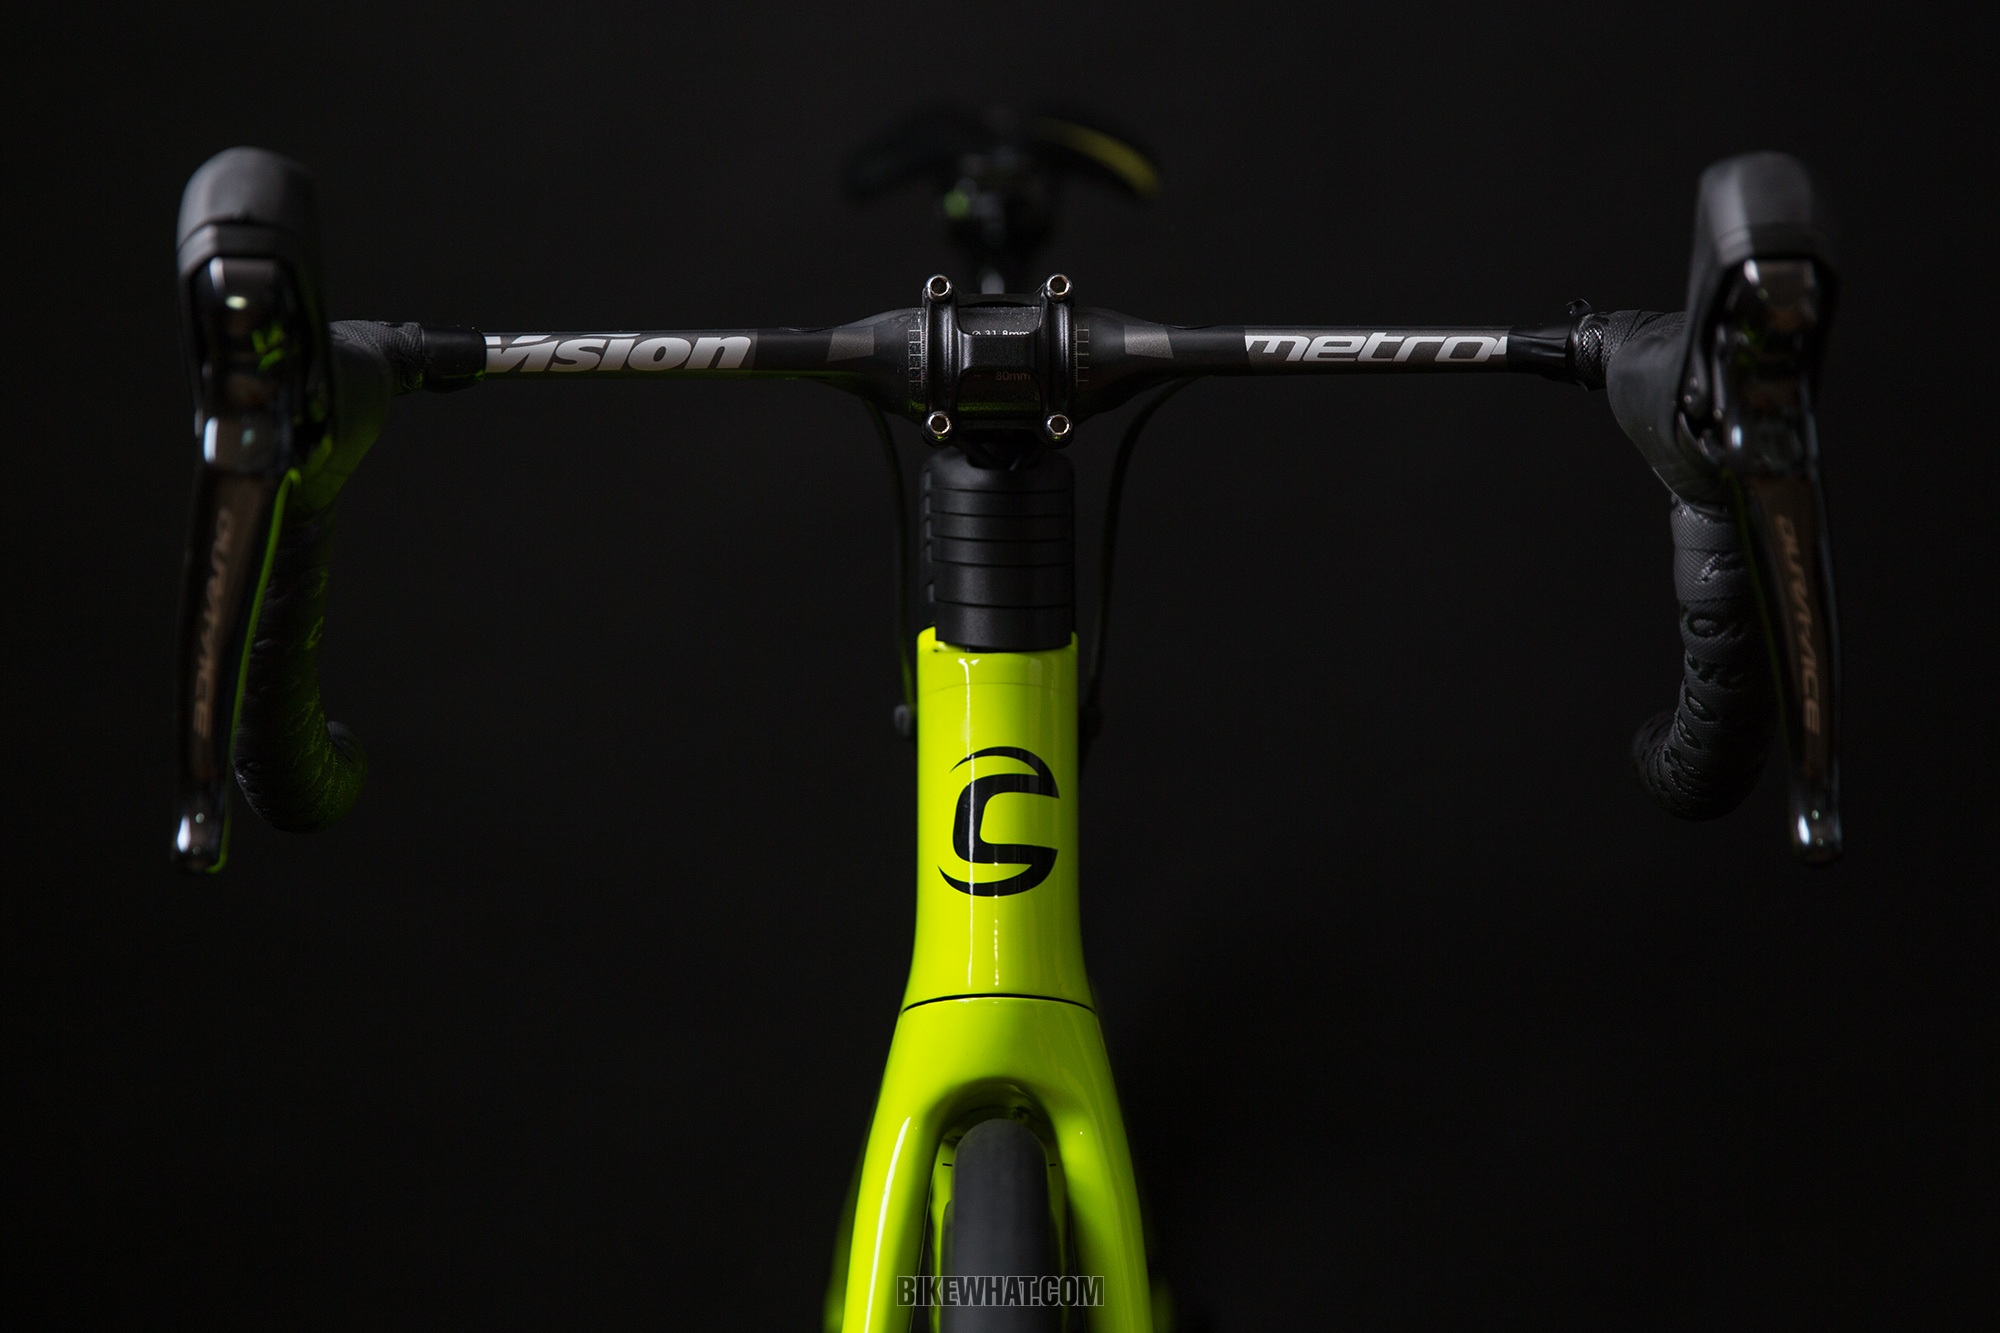 testride_cannondale_systemsix_04.jpg